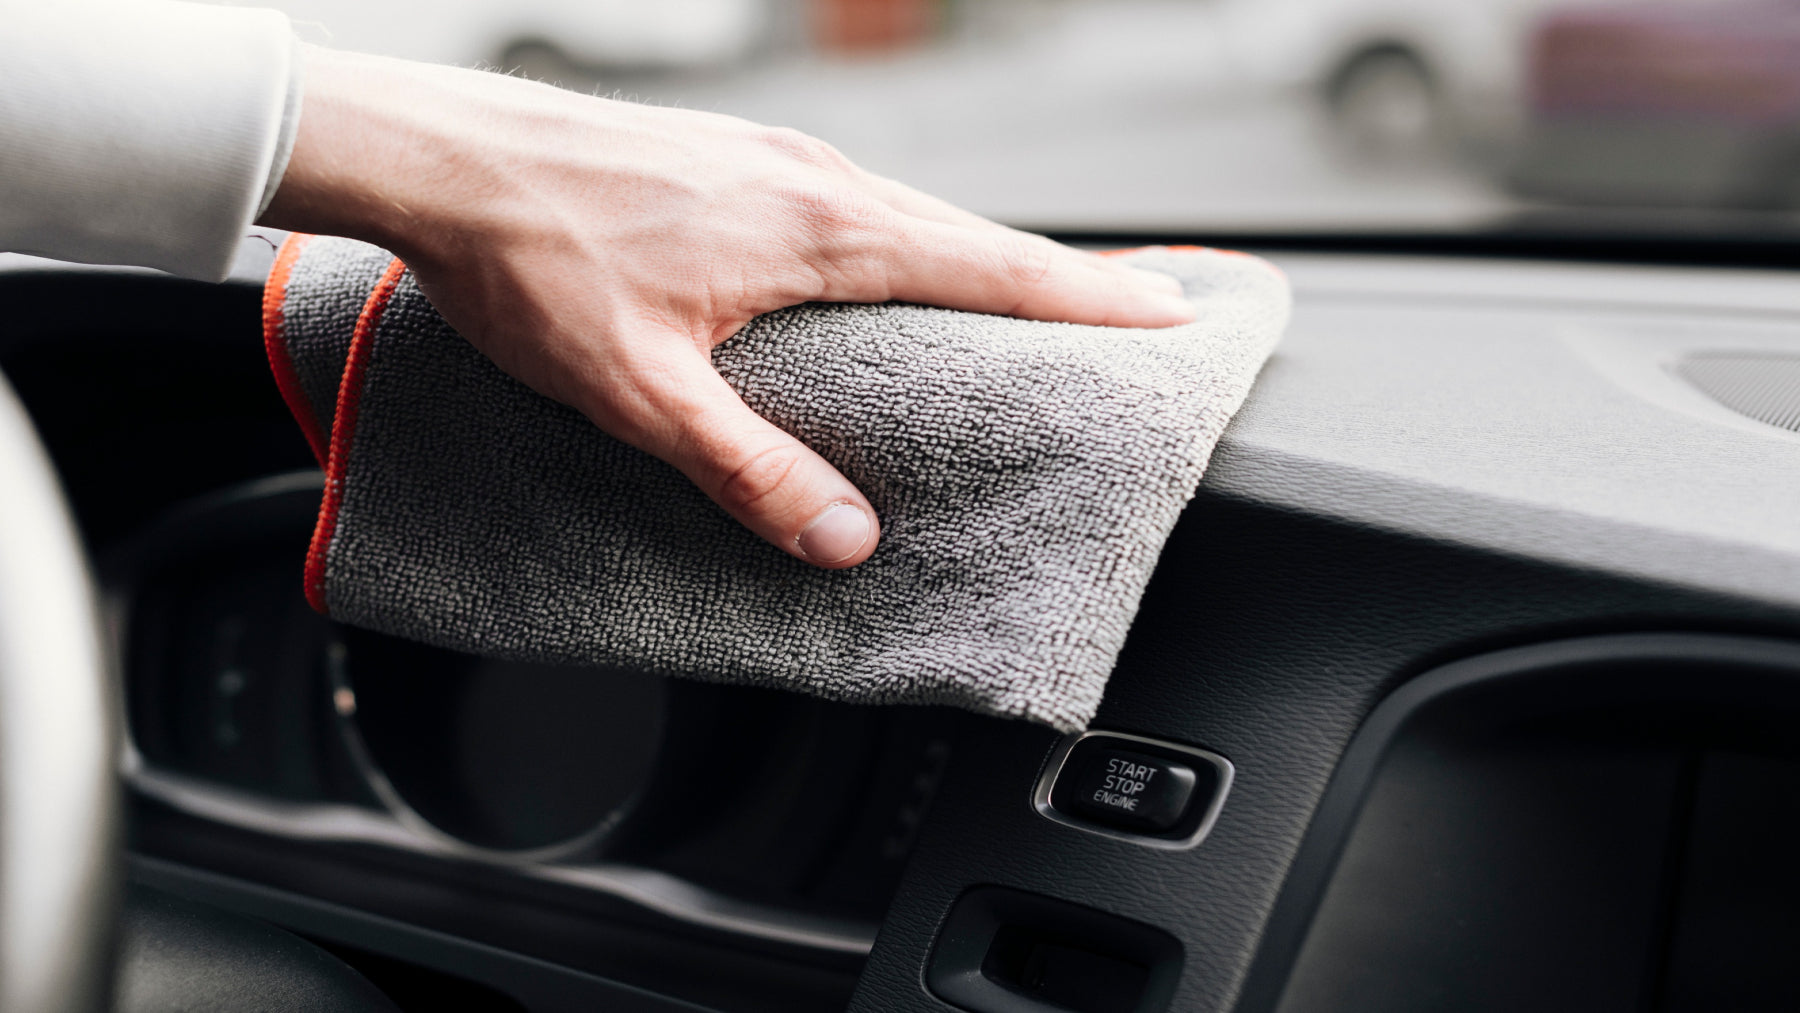 How to Keep Your Car Bacteria Free?